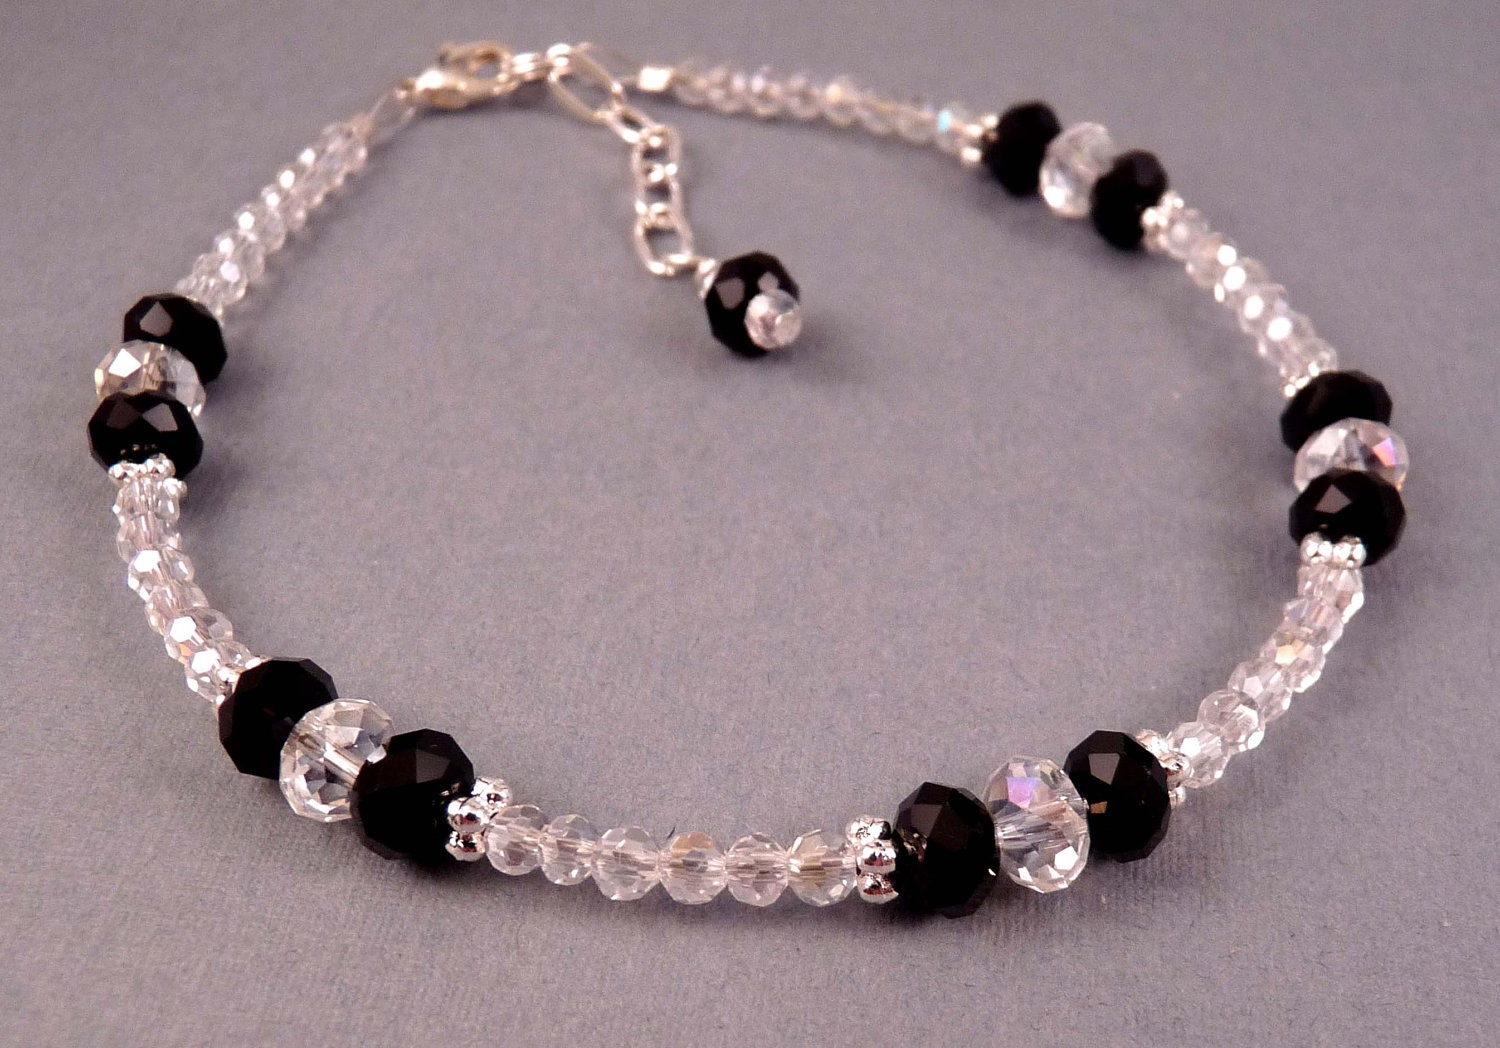 Beaded Anklet | KB Cakes & Creations